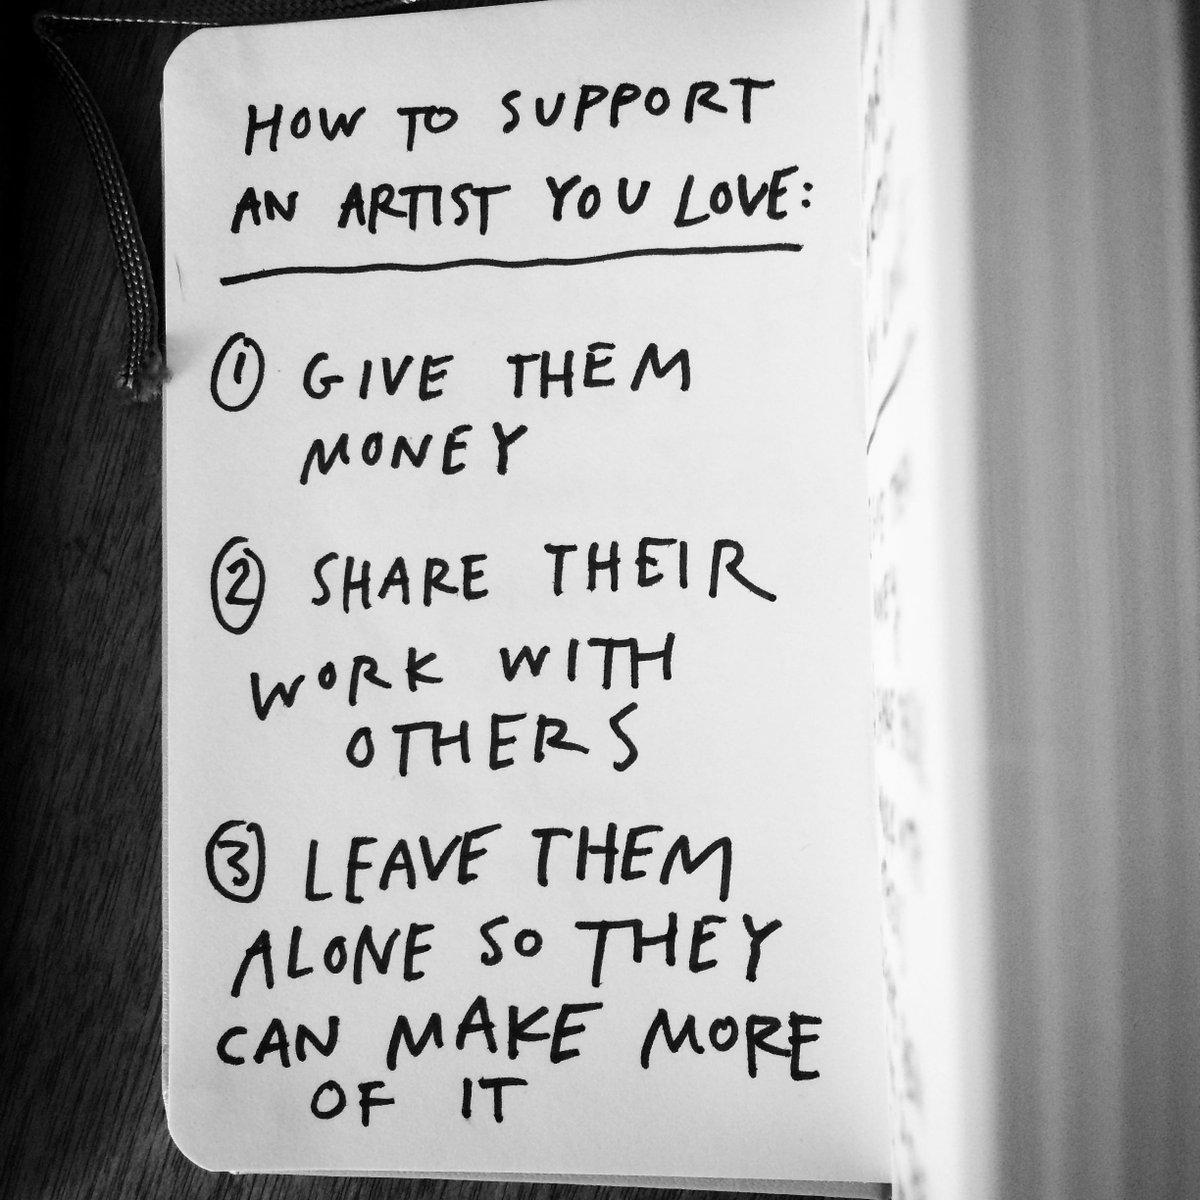 How to support an artist you love: http://t.co/DSVpIvjZys